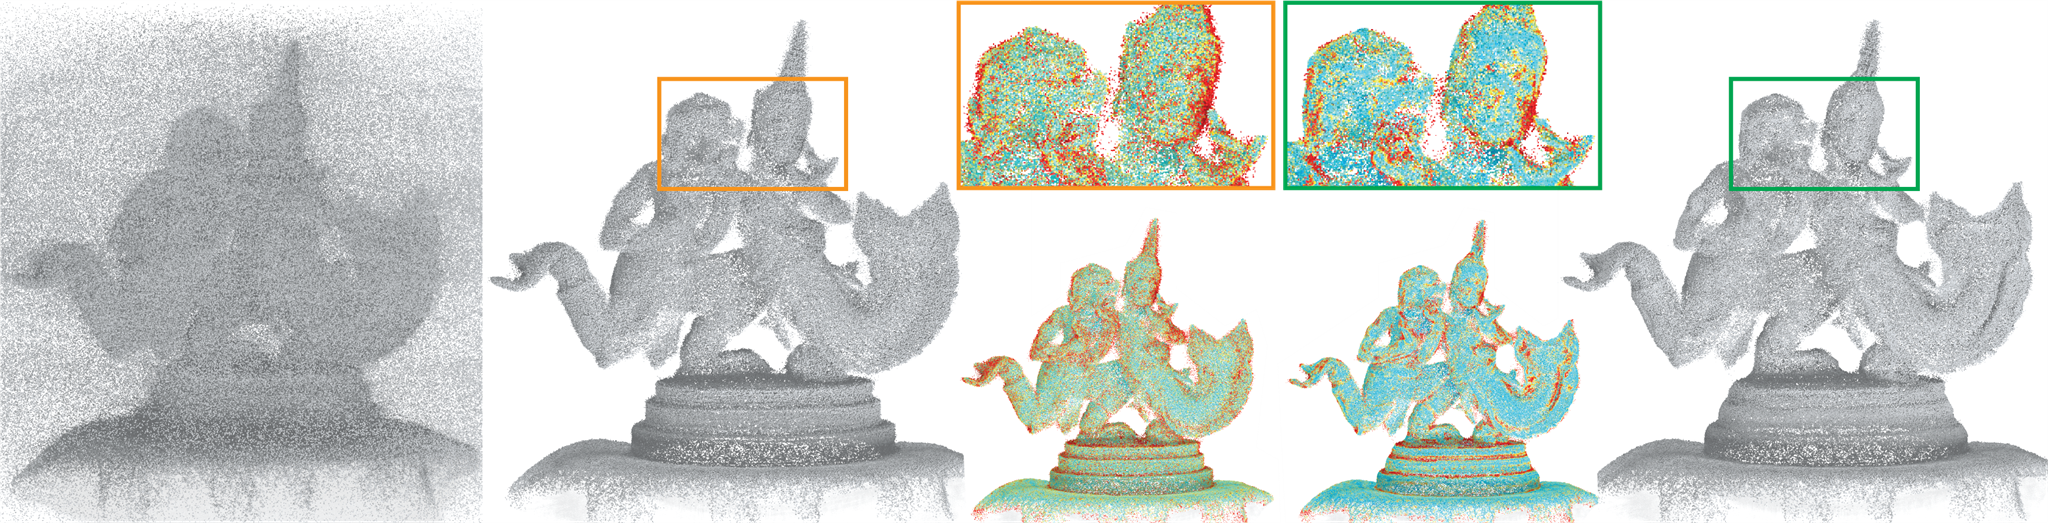 PointCleanNet cleans point clouds